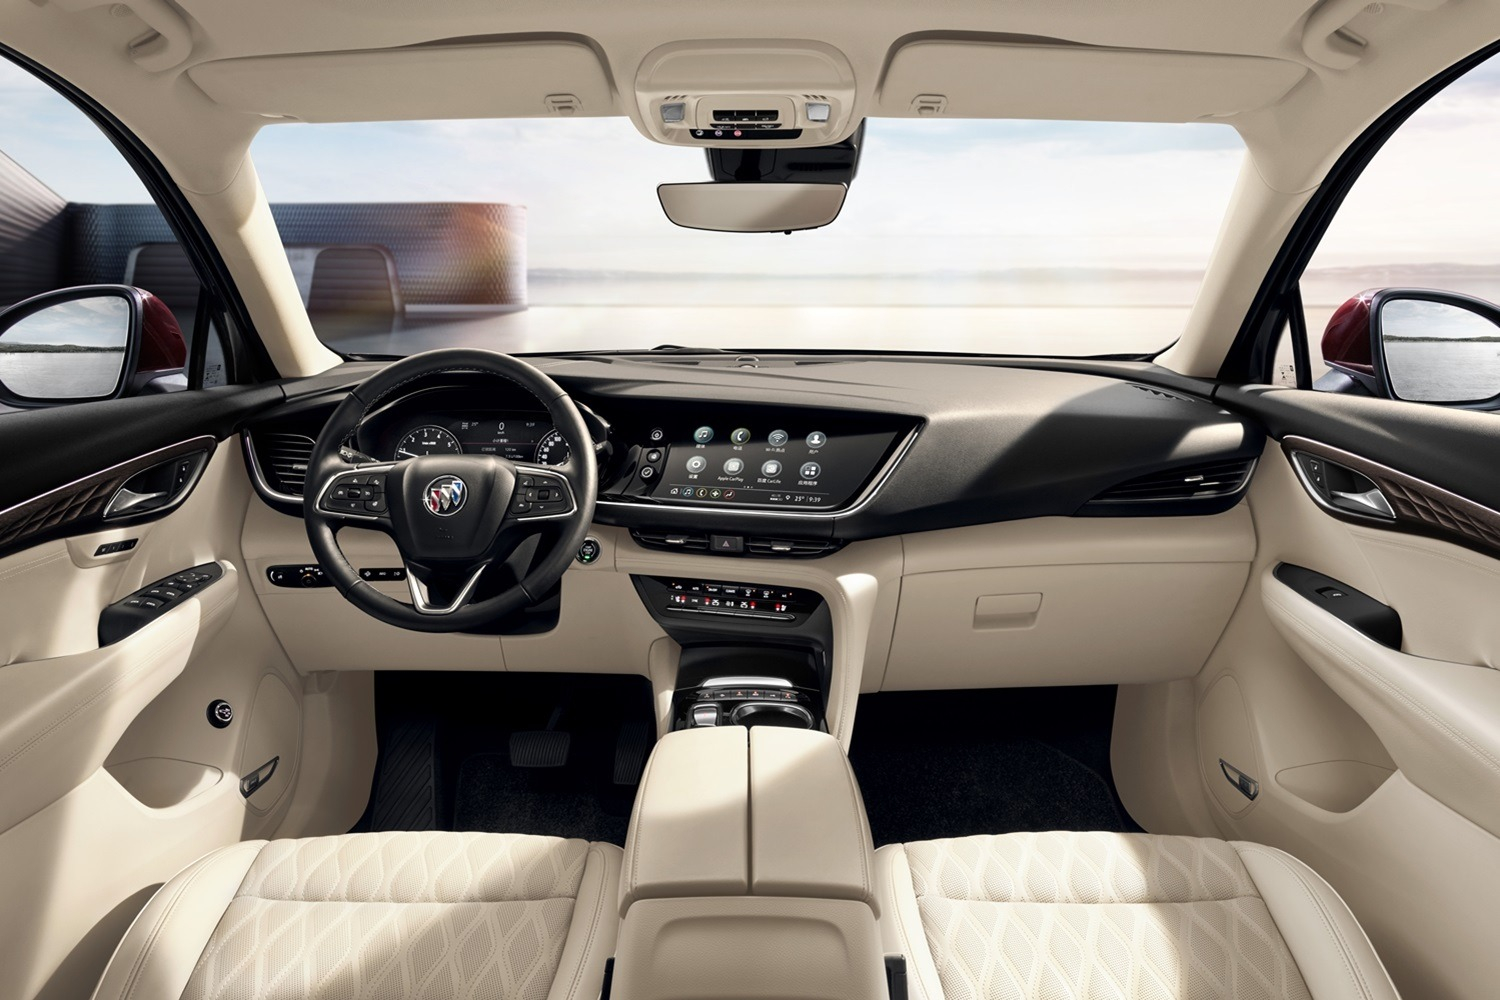 2021 Buick Envision Info, Specs, Wiki | Gm Authority 2021 Buick Lucerne Dimensions, Hp, Interior